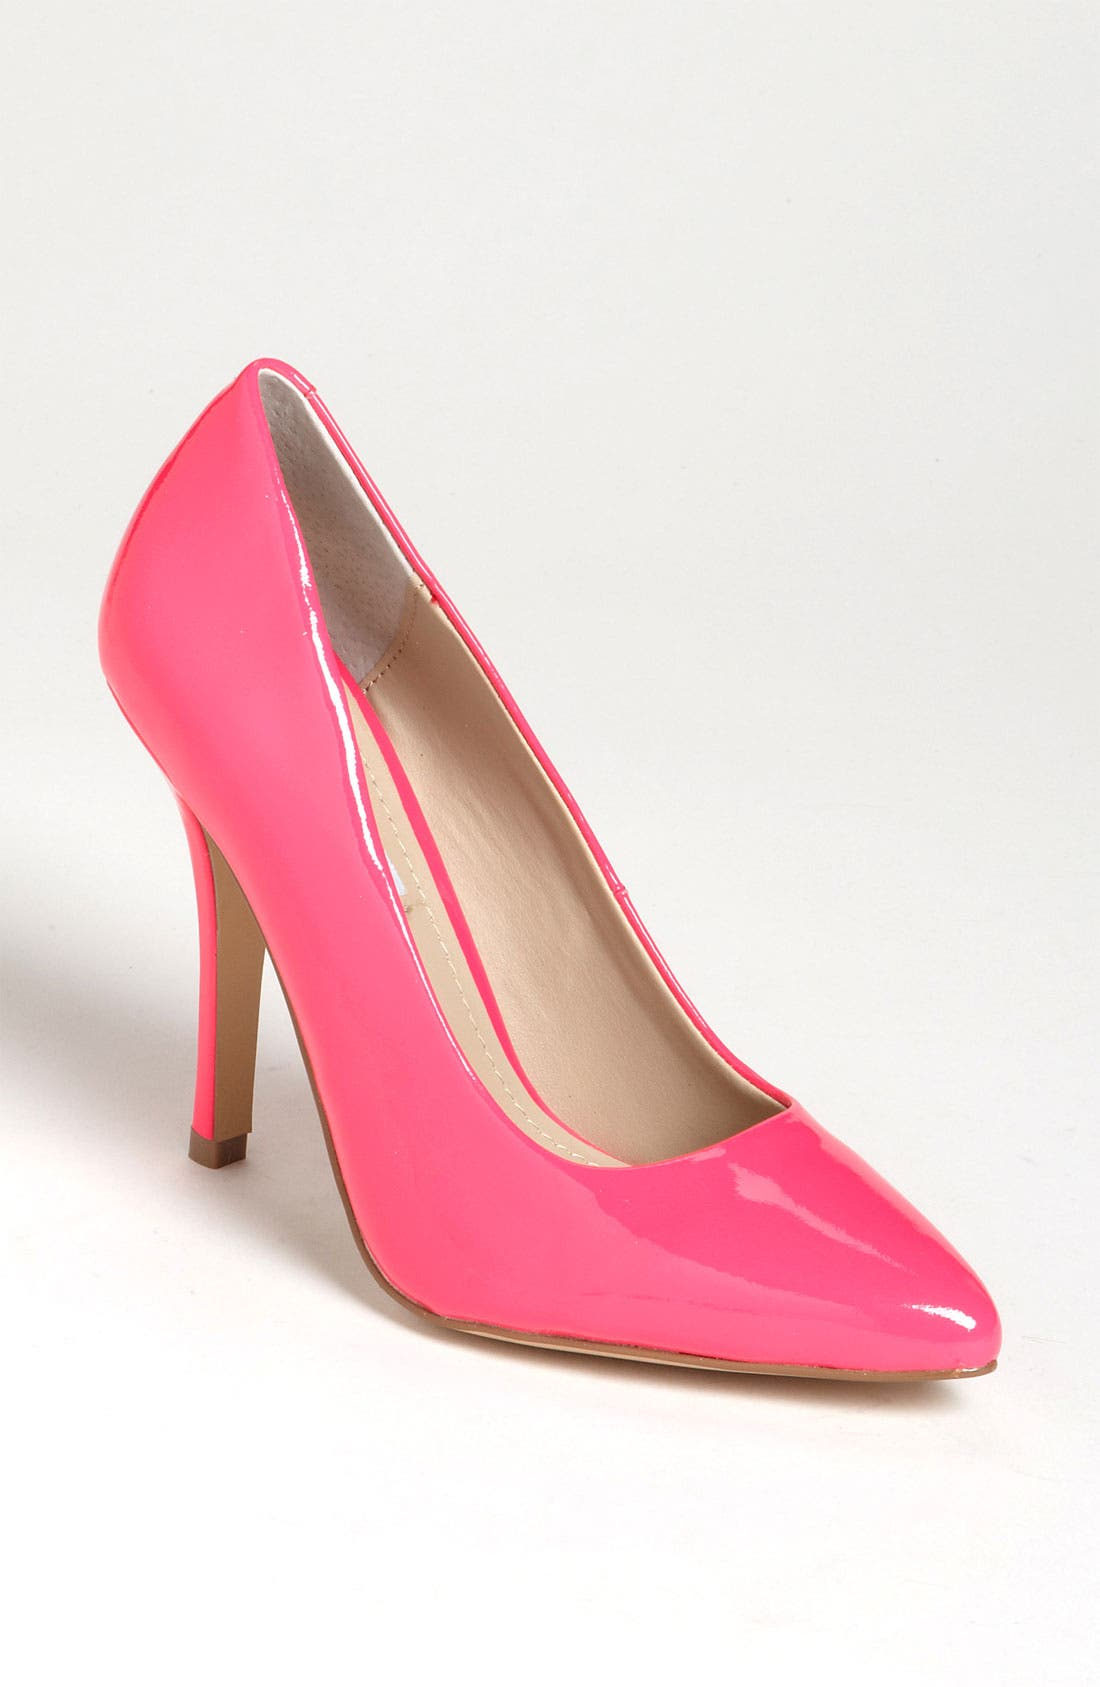 Alternate Image 1 Selected - Steve Madden 'Intrude' Pump